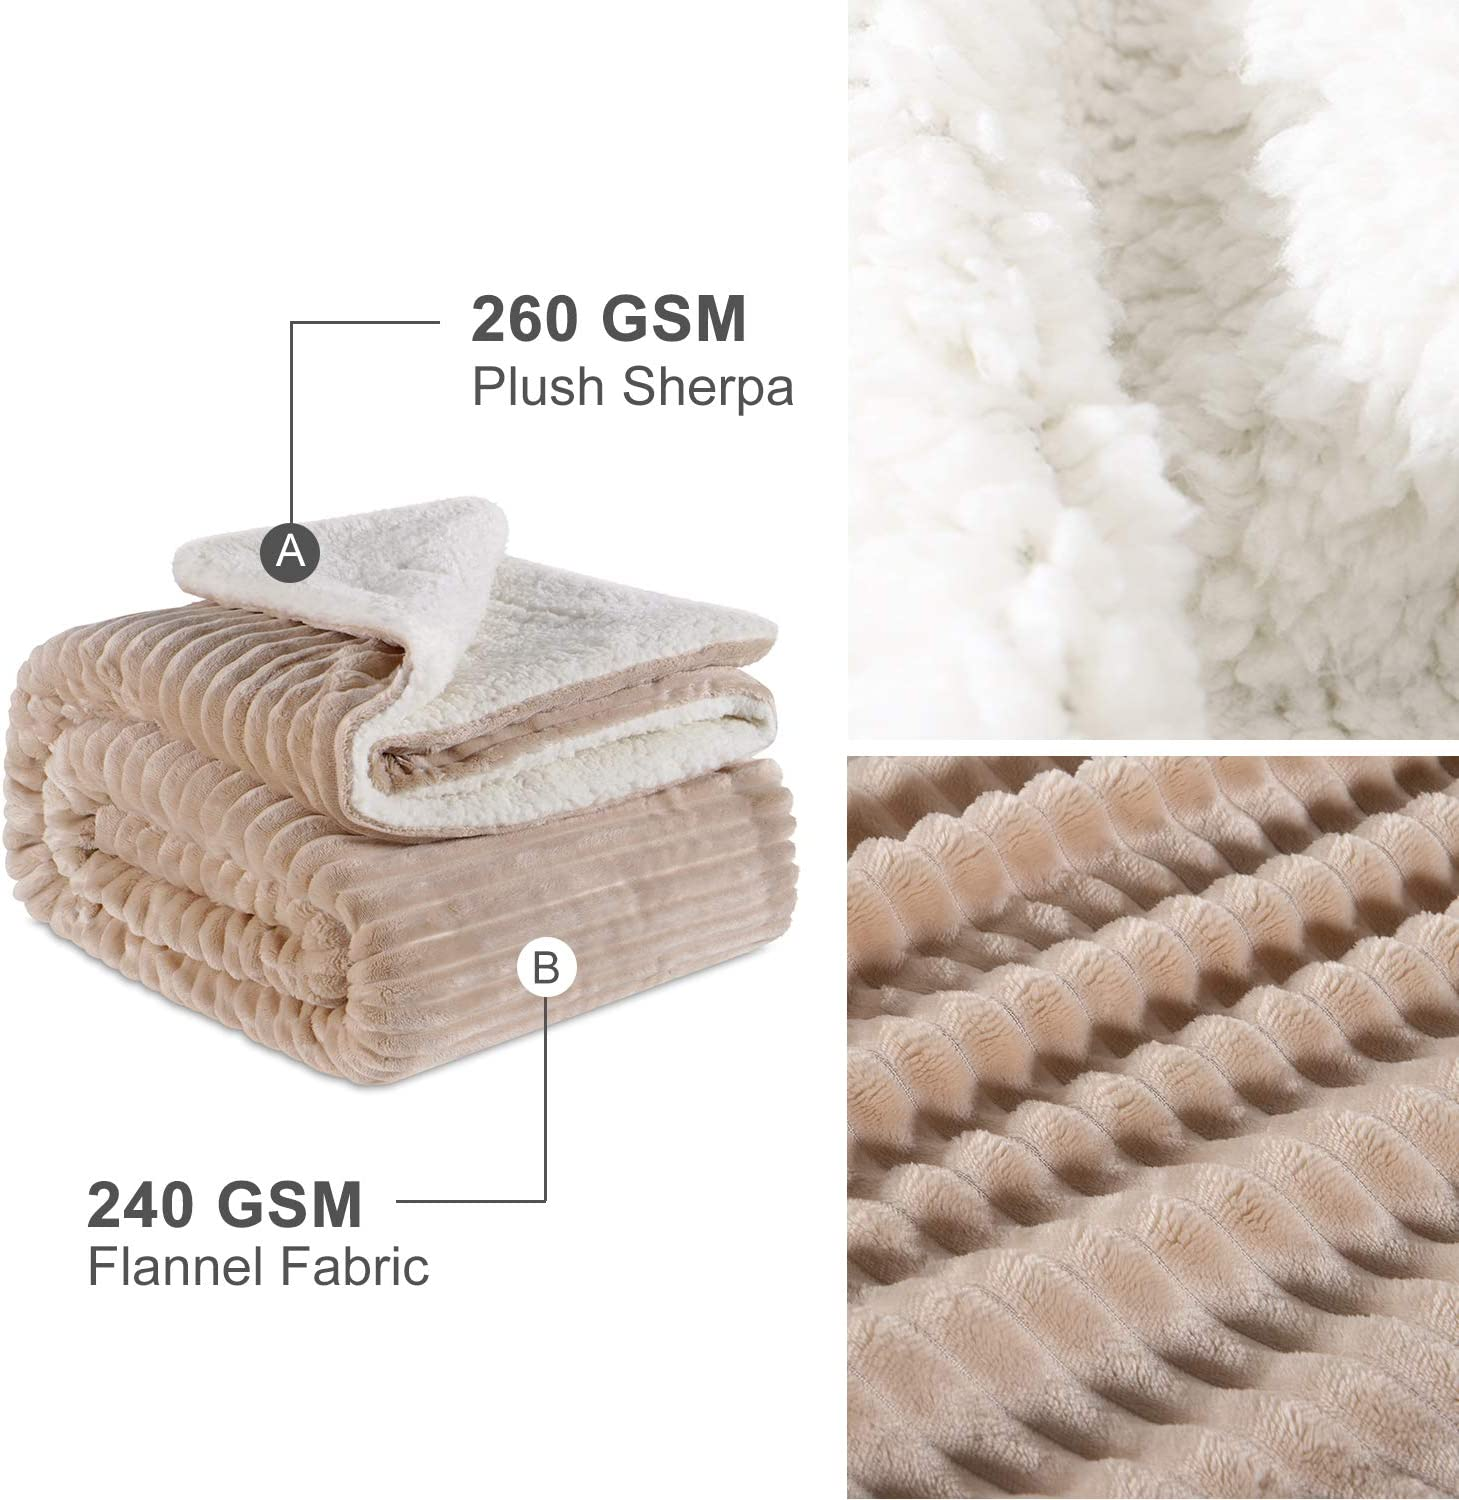 Grey, 30x40 EMME Baby Blanket Fuzzy Sherpa Fleece Blankets Soft Warm Receiving Blankets for Toddler Decor Nap Stroller Boys and Girls Gift Reversible Cozy Blanket for Crib Infant Outdoor